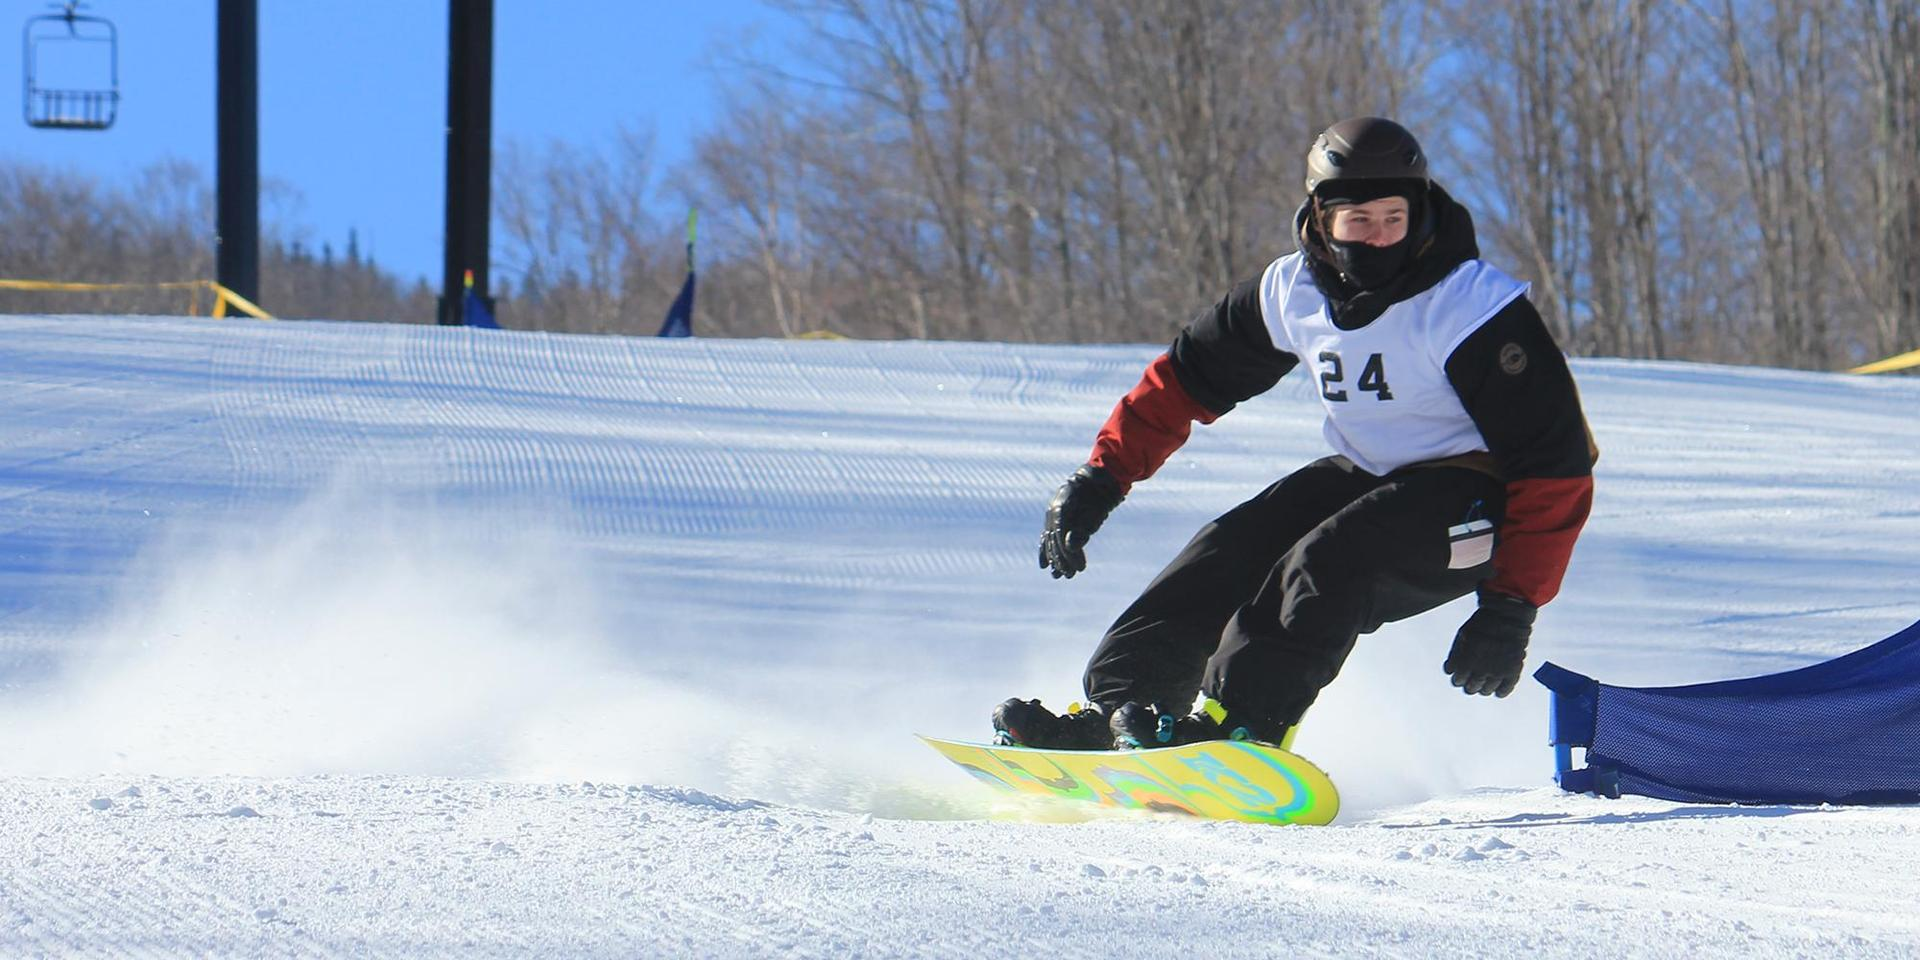 A student snowboarding down Cannon Mountain in a competition.